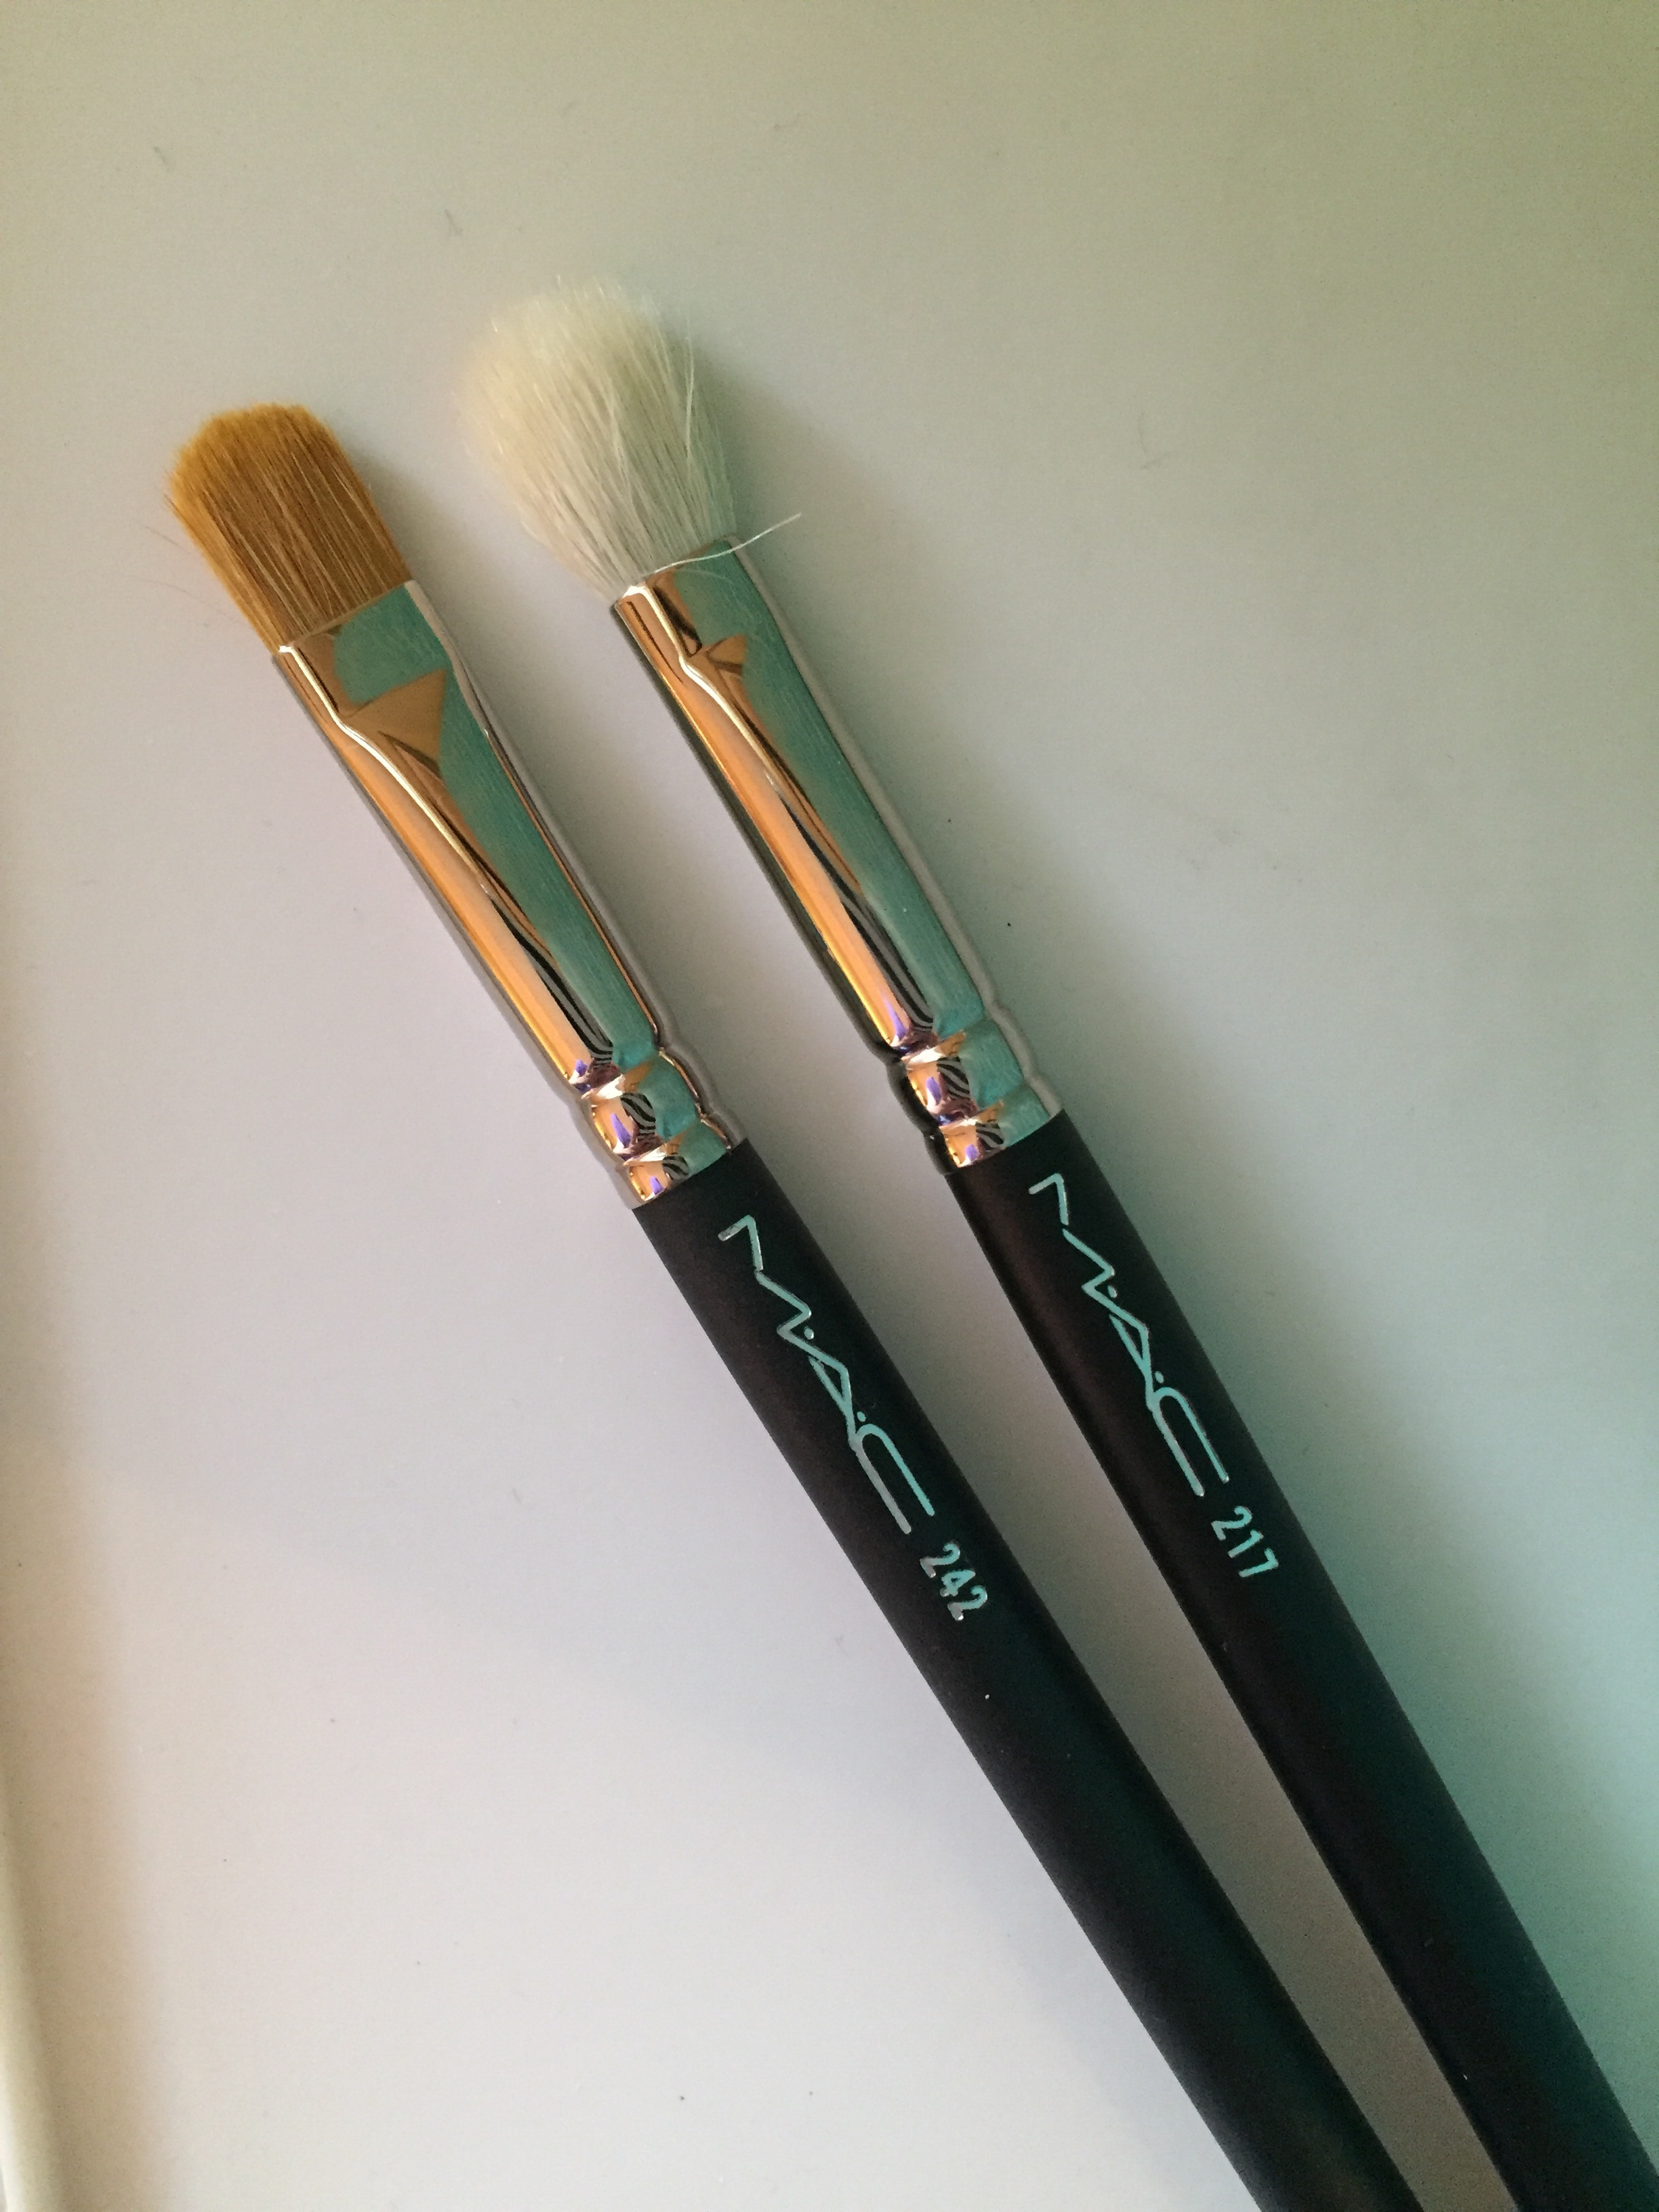 217 and 242 mac brushes